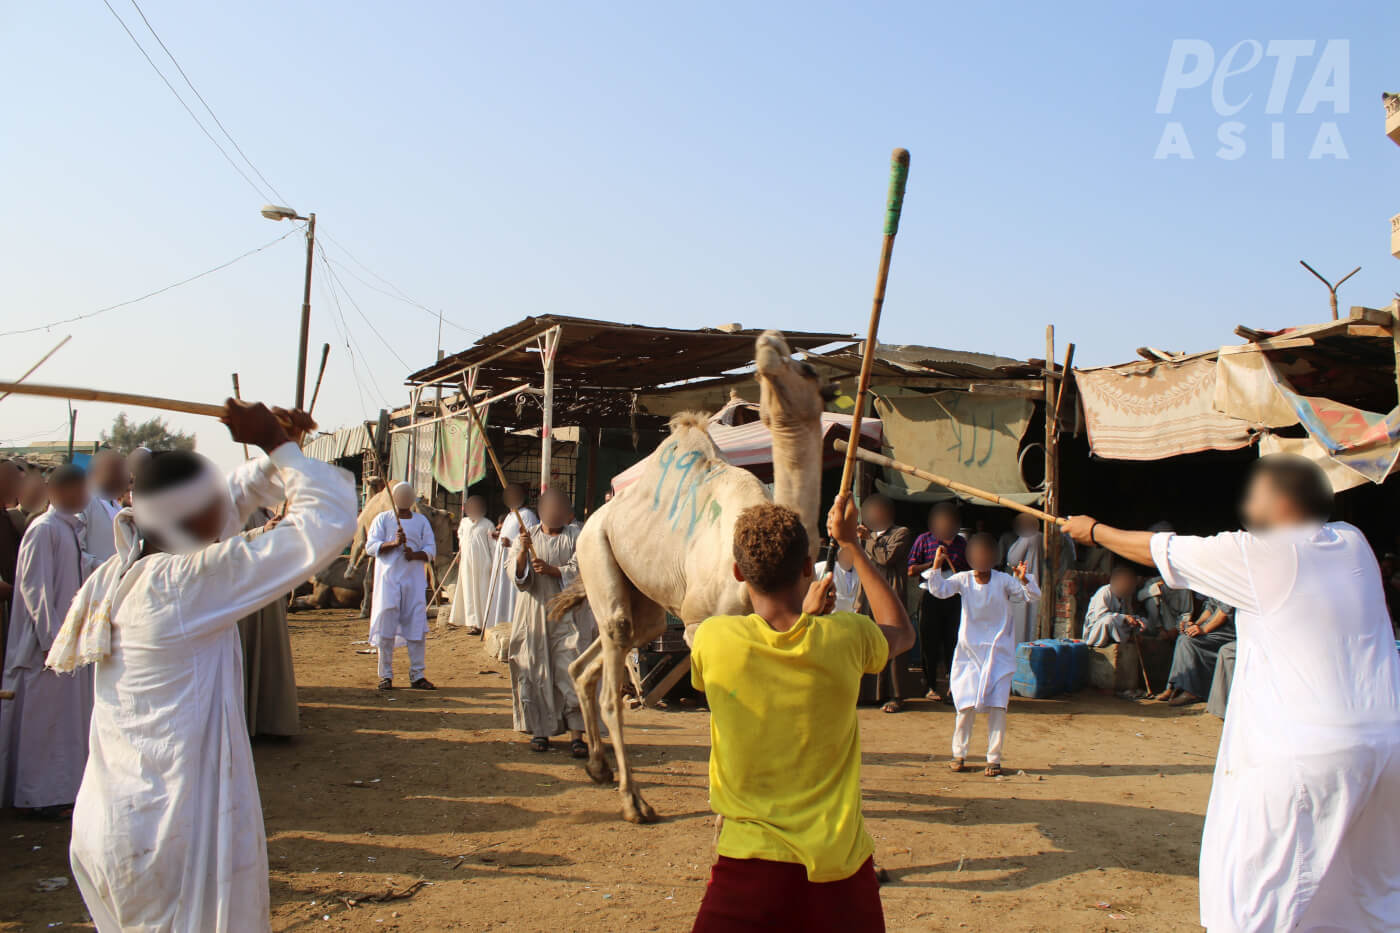 camels being beaten at Birqash Camel Market in Cairo